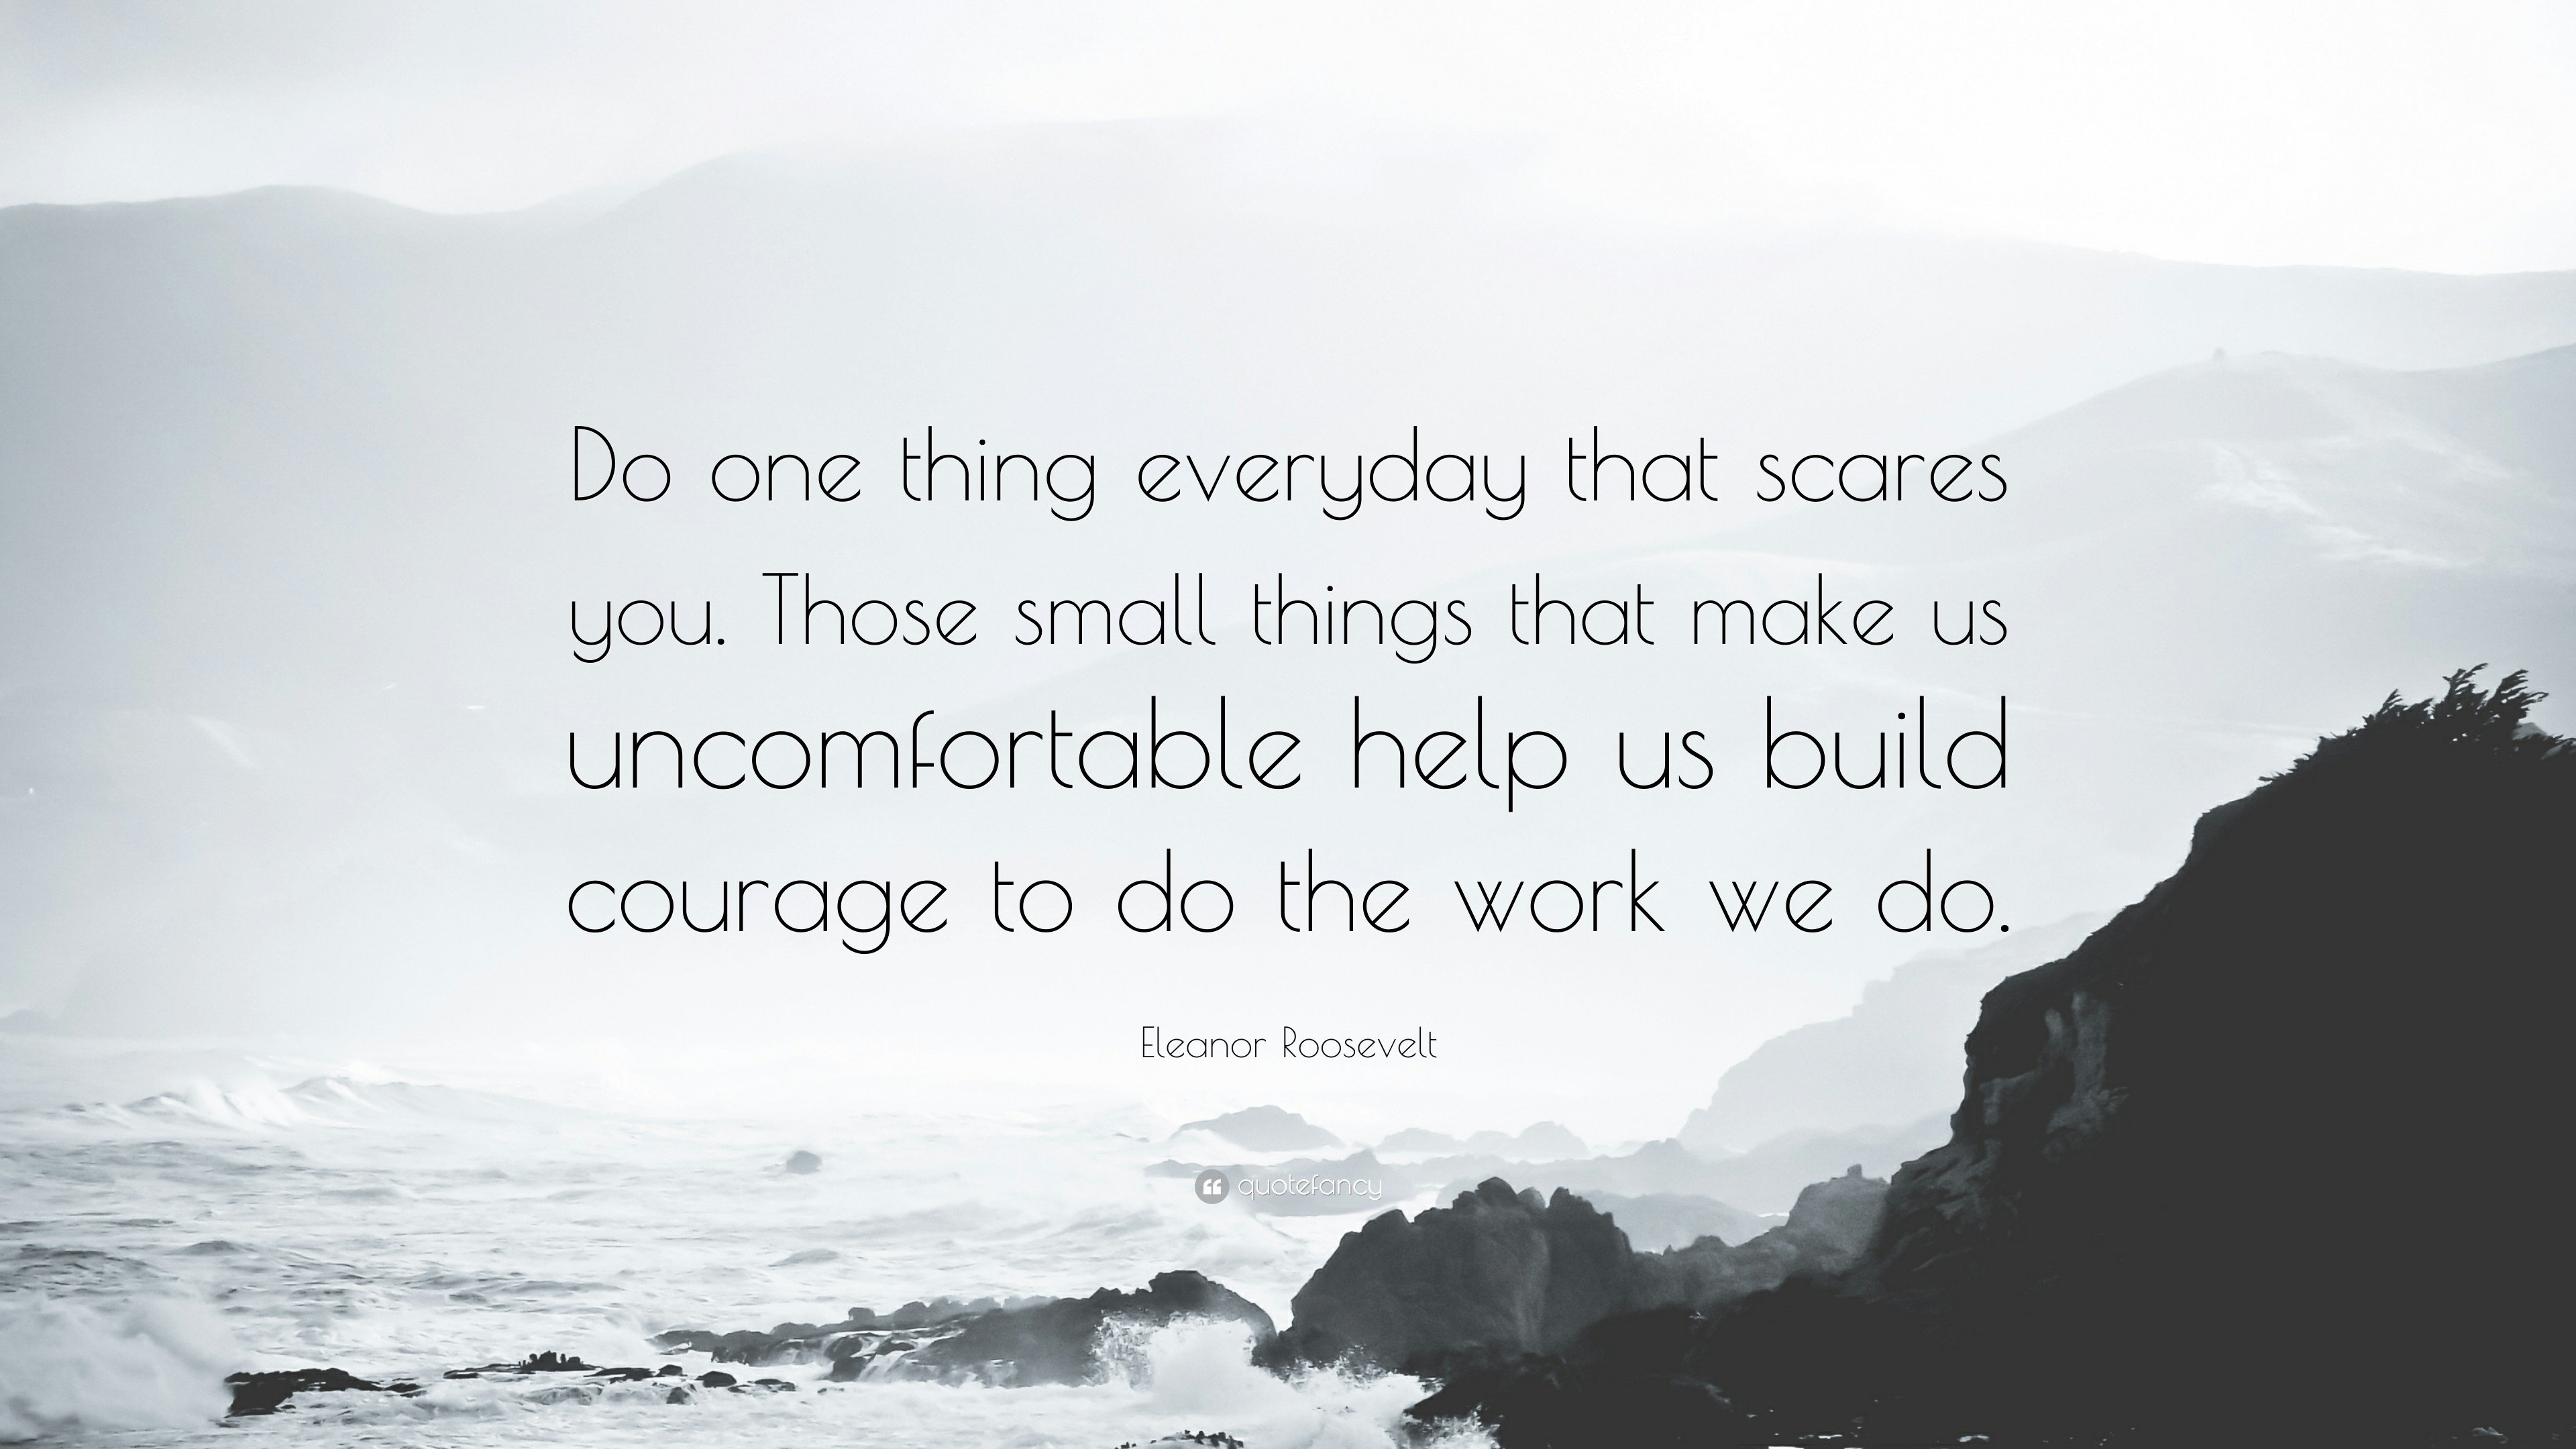 Eleanor Roosevelt Quote Do One Thing Everyday That Scares You